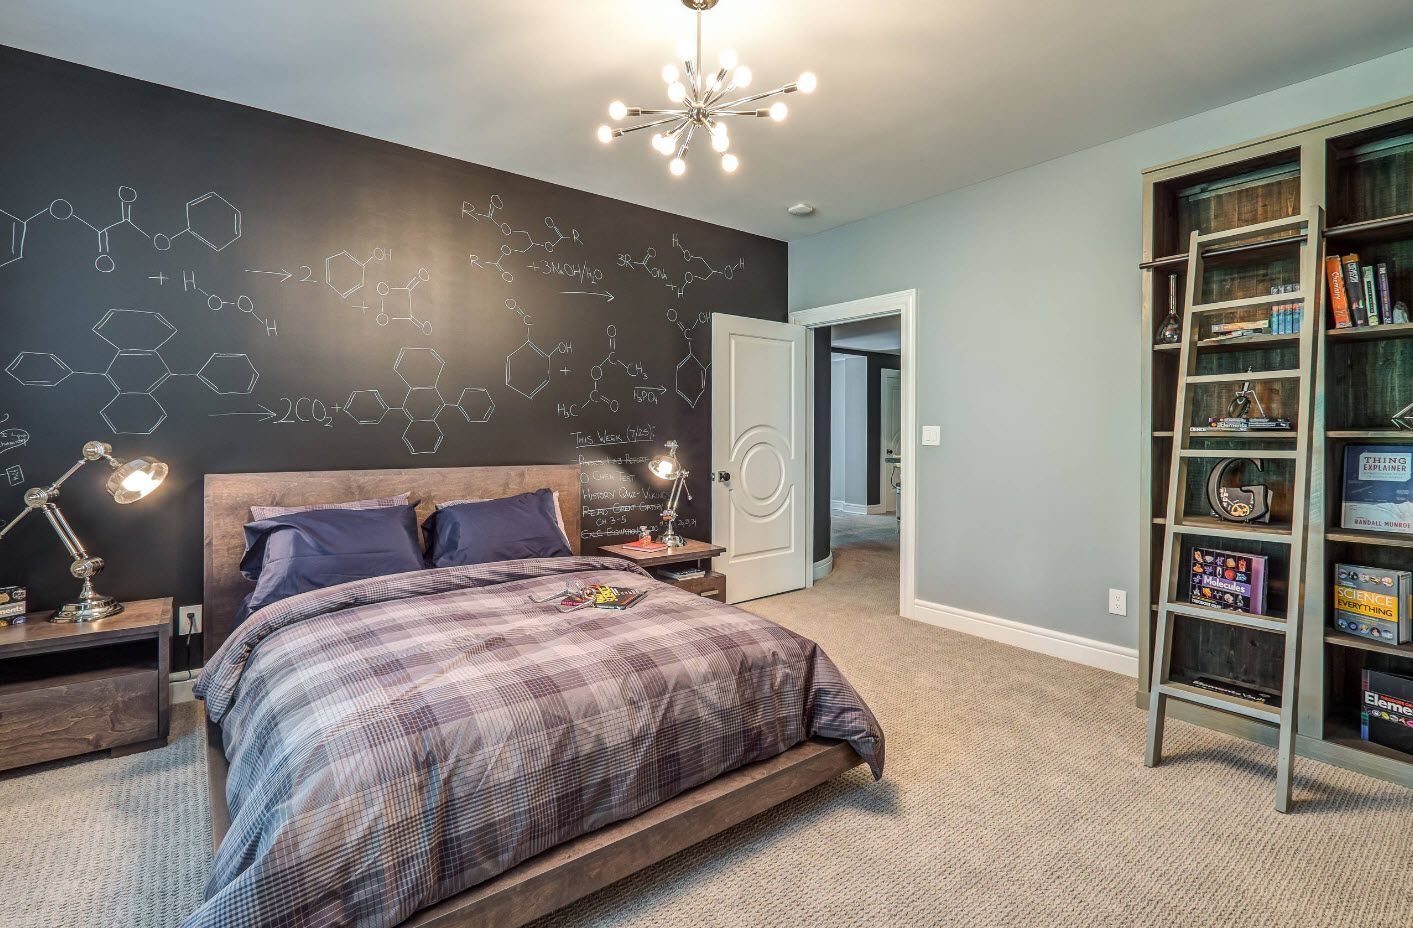 Gray accent wall in the room for senior pupil or high school student